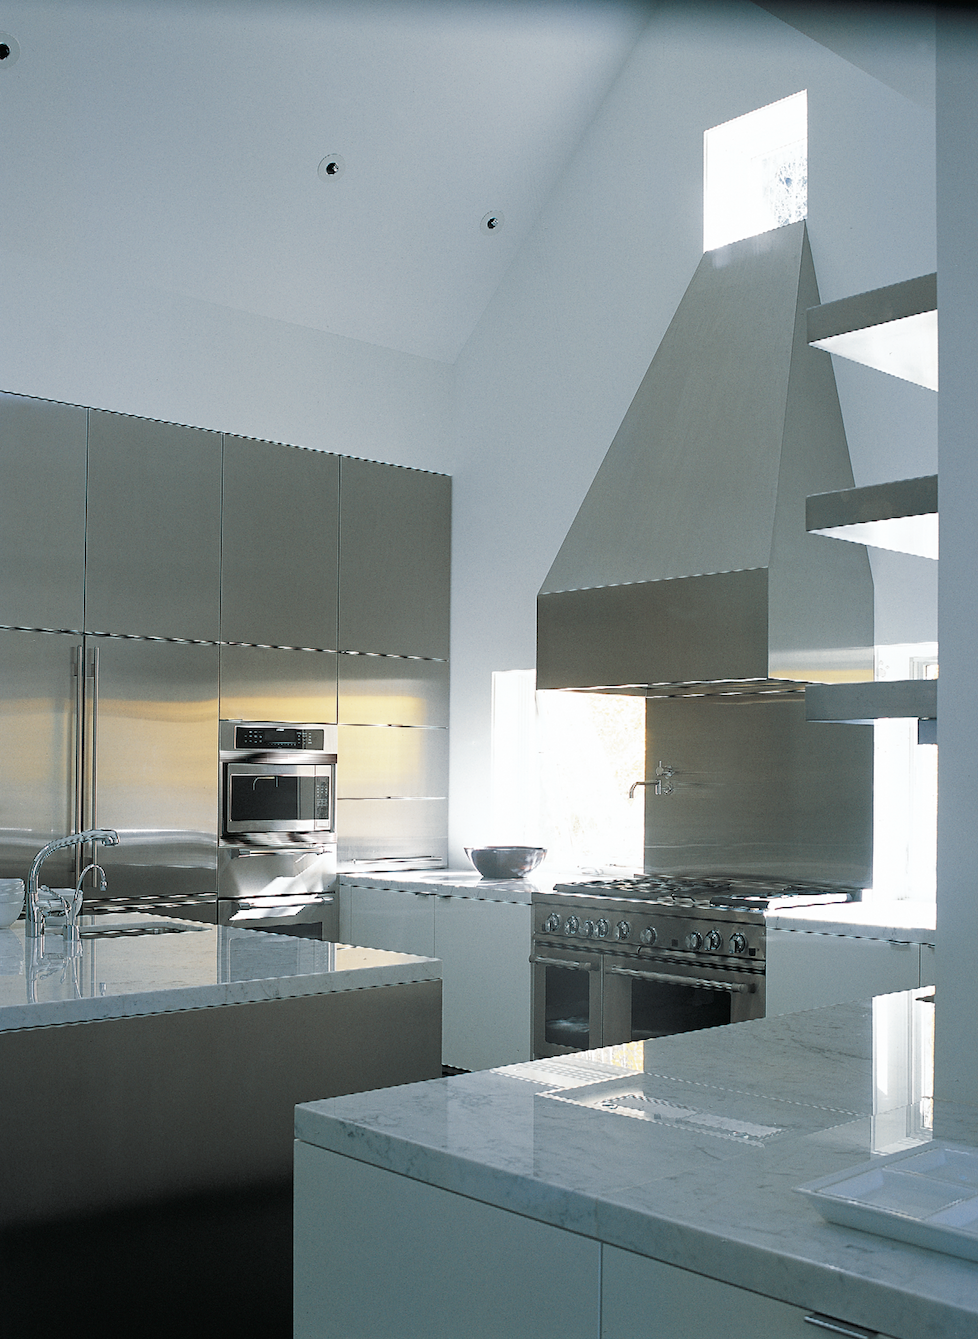 Stainless steel and plaster drive this geometric design in Aspen, Co.